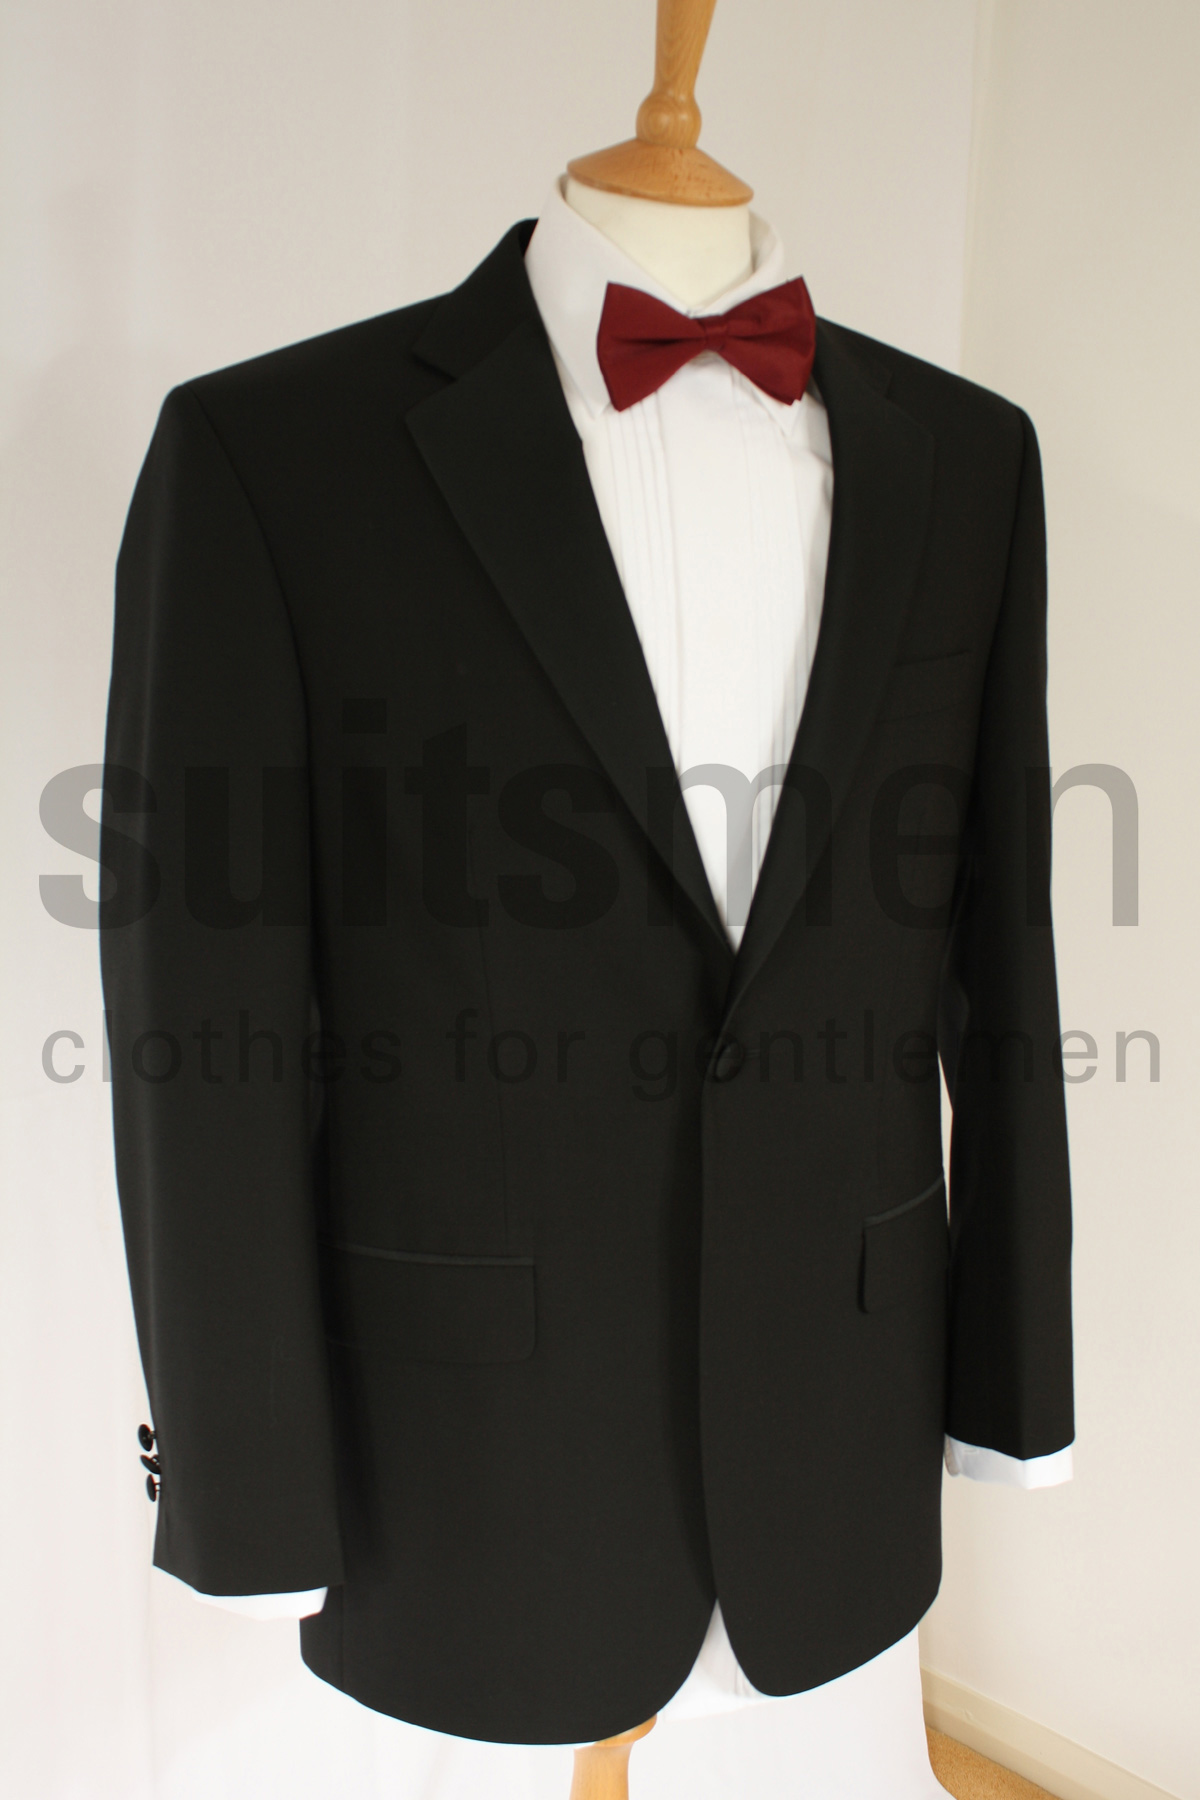 Dinner Jacket Head to a formal event looking well put together in a dinner jacket and a matching suit and tie. For a modern and dapper look, wear a suit by Tommy Hilfiger.